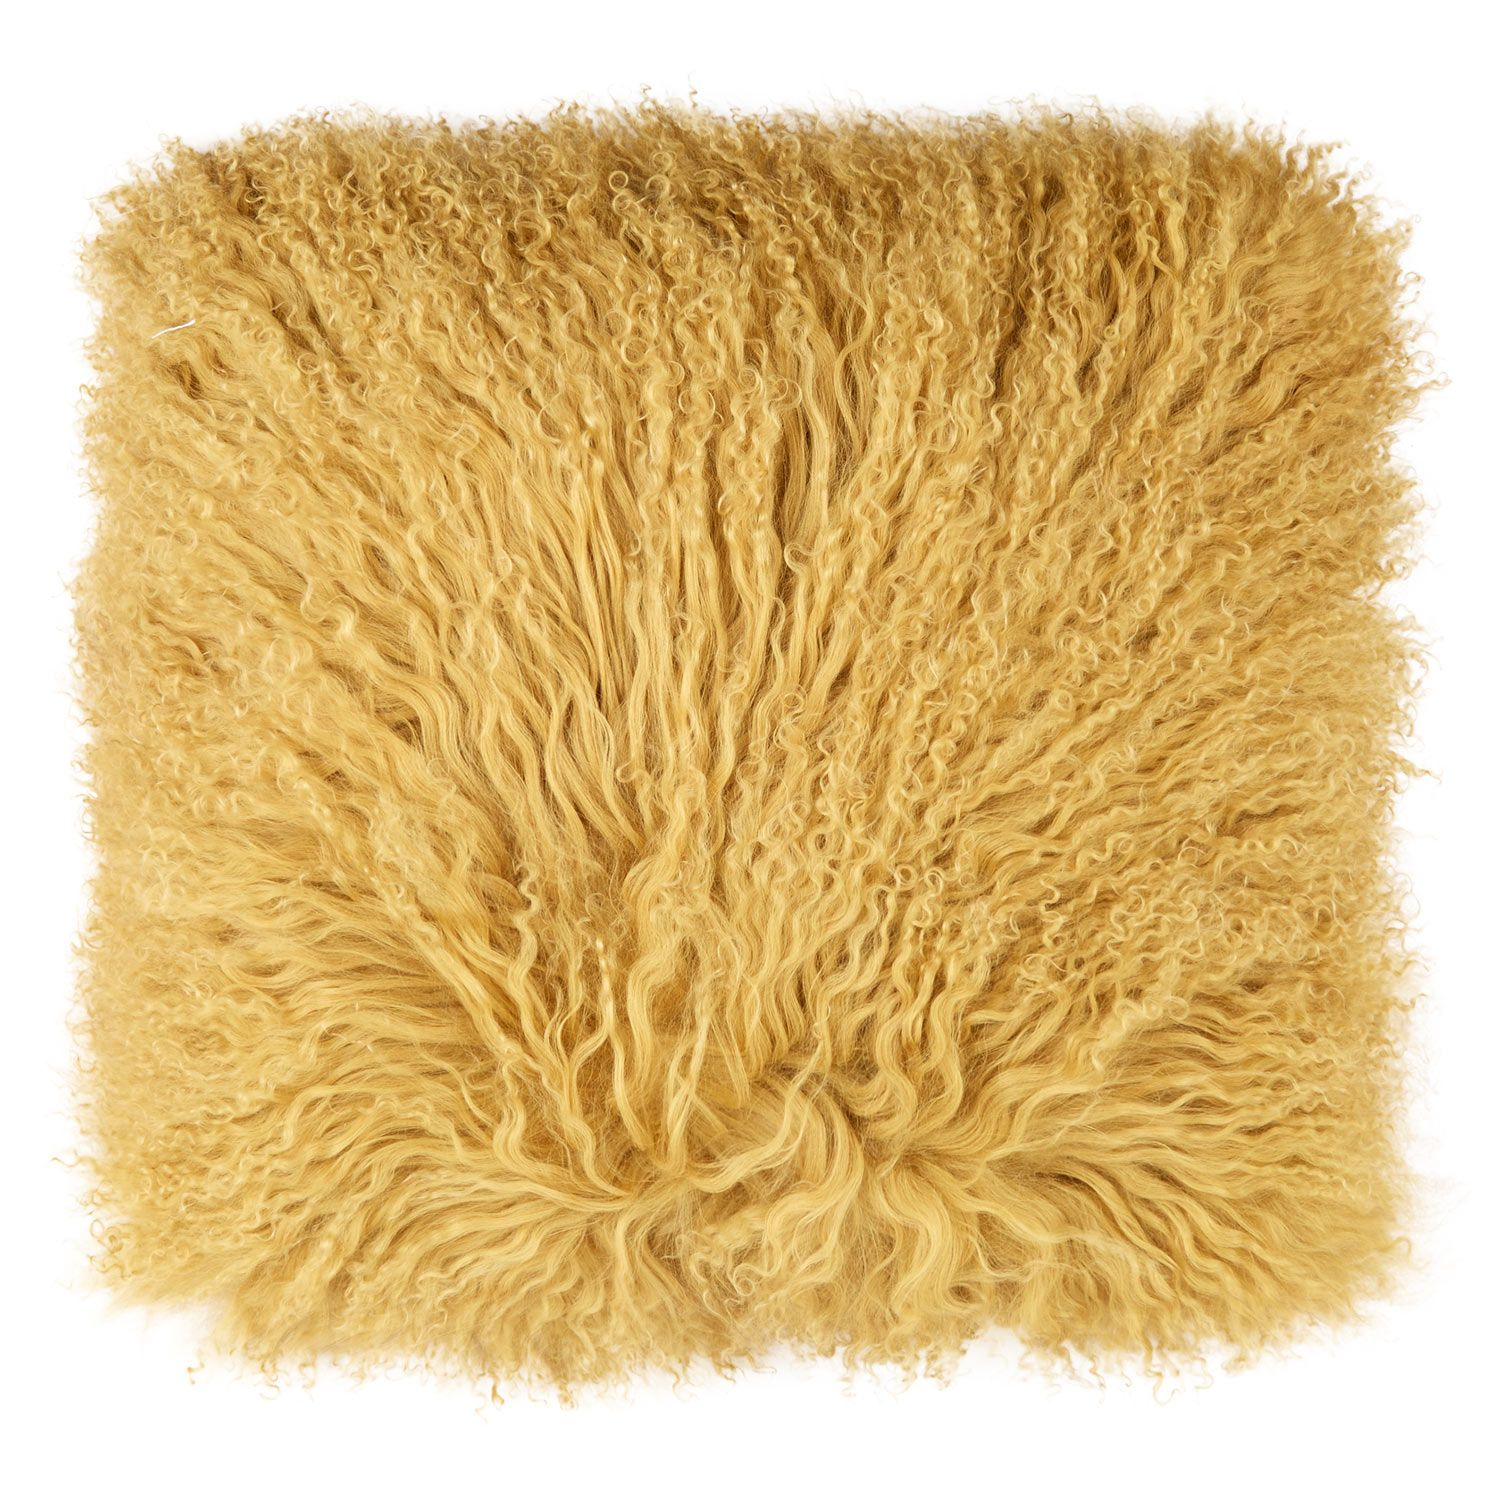 The Cushion Factory Yellow Mongolian Sheepskin Cushion Tk Maxx